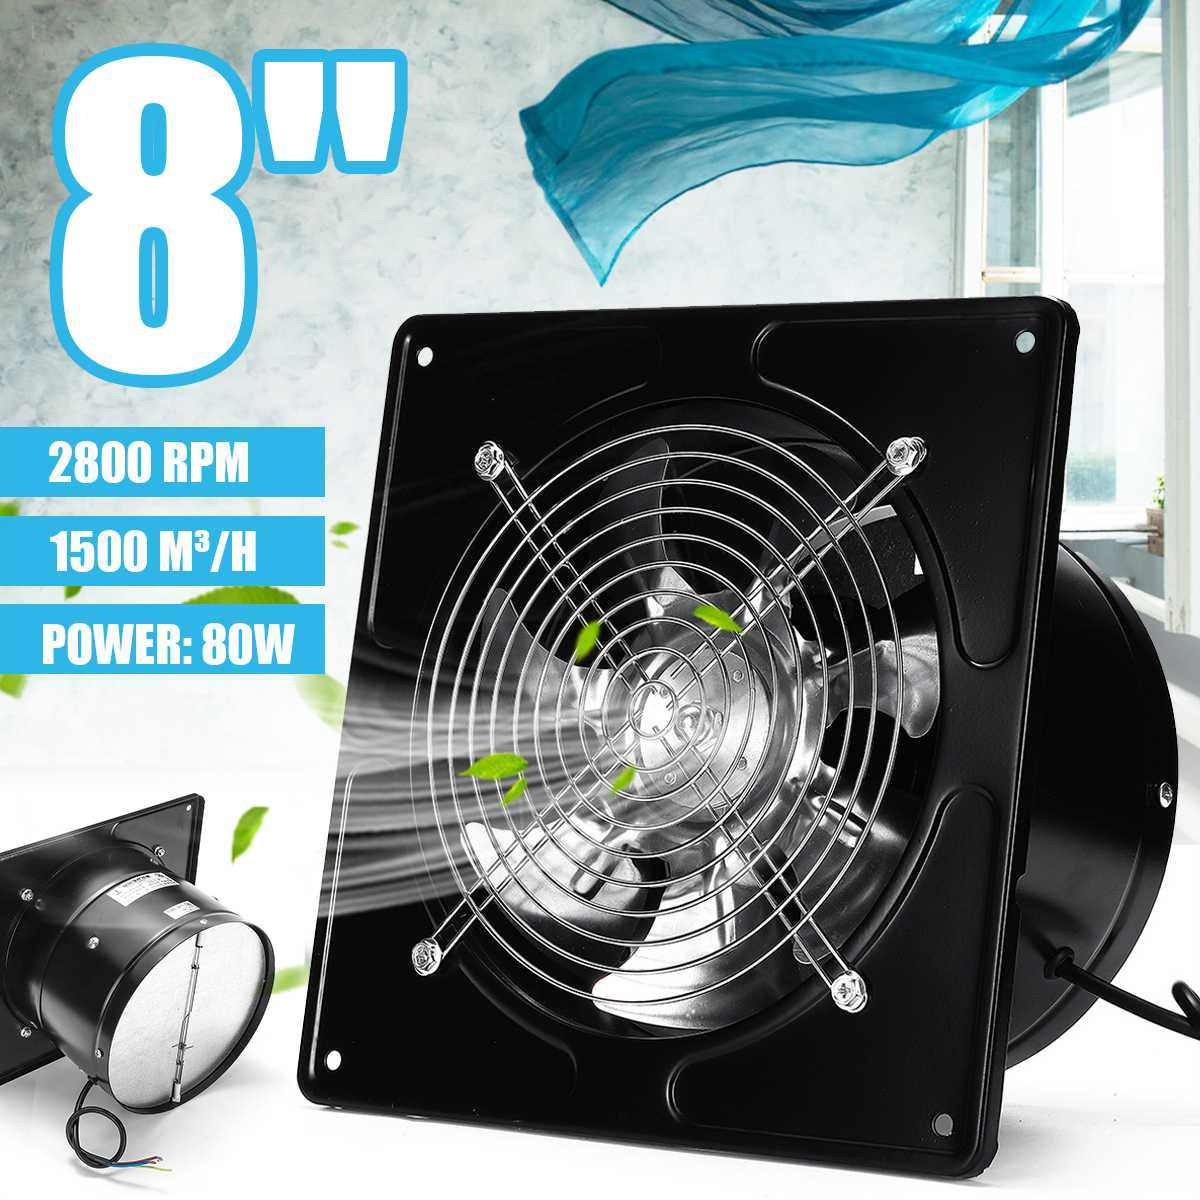 8 Inch 220v 2800rpm 80w Extractor Fan Silent Wall Extractor